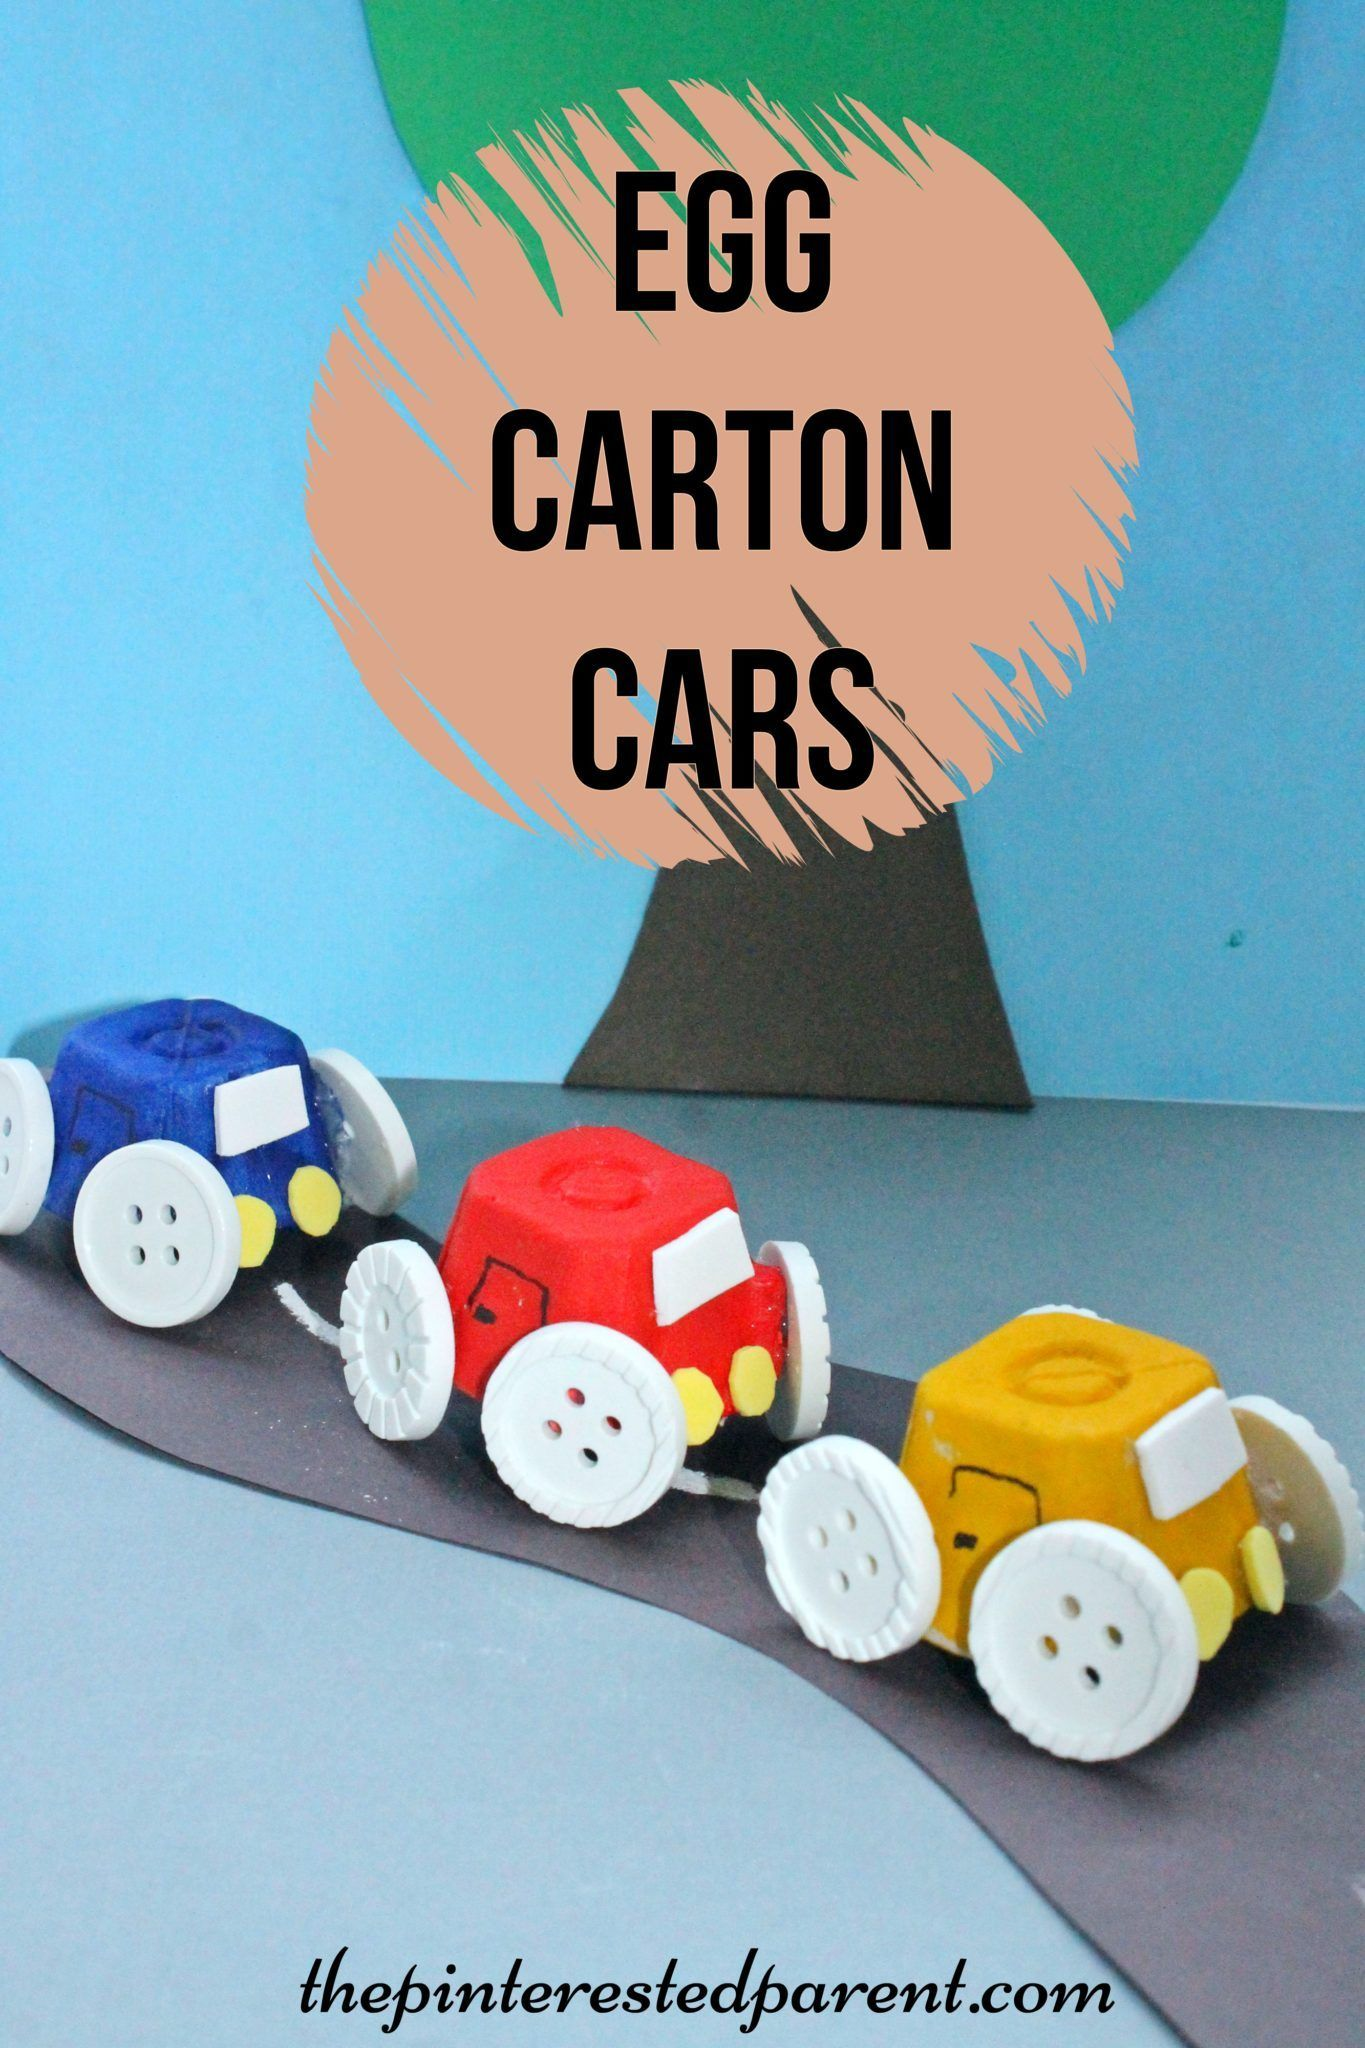 Exceptional Car Craft For Kids Part - 3: Simple Egg Carton Car Craft For Kids. Easy Arts U0026 Crafts With Recyclables.